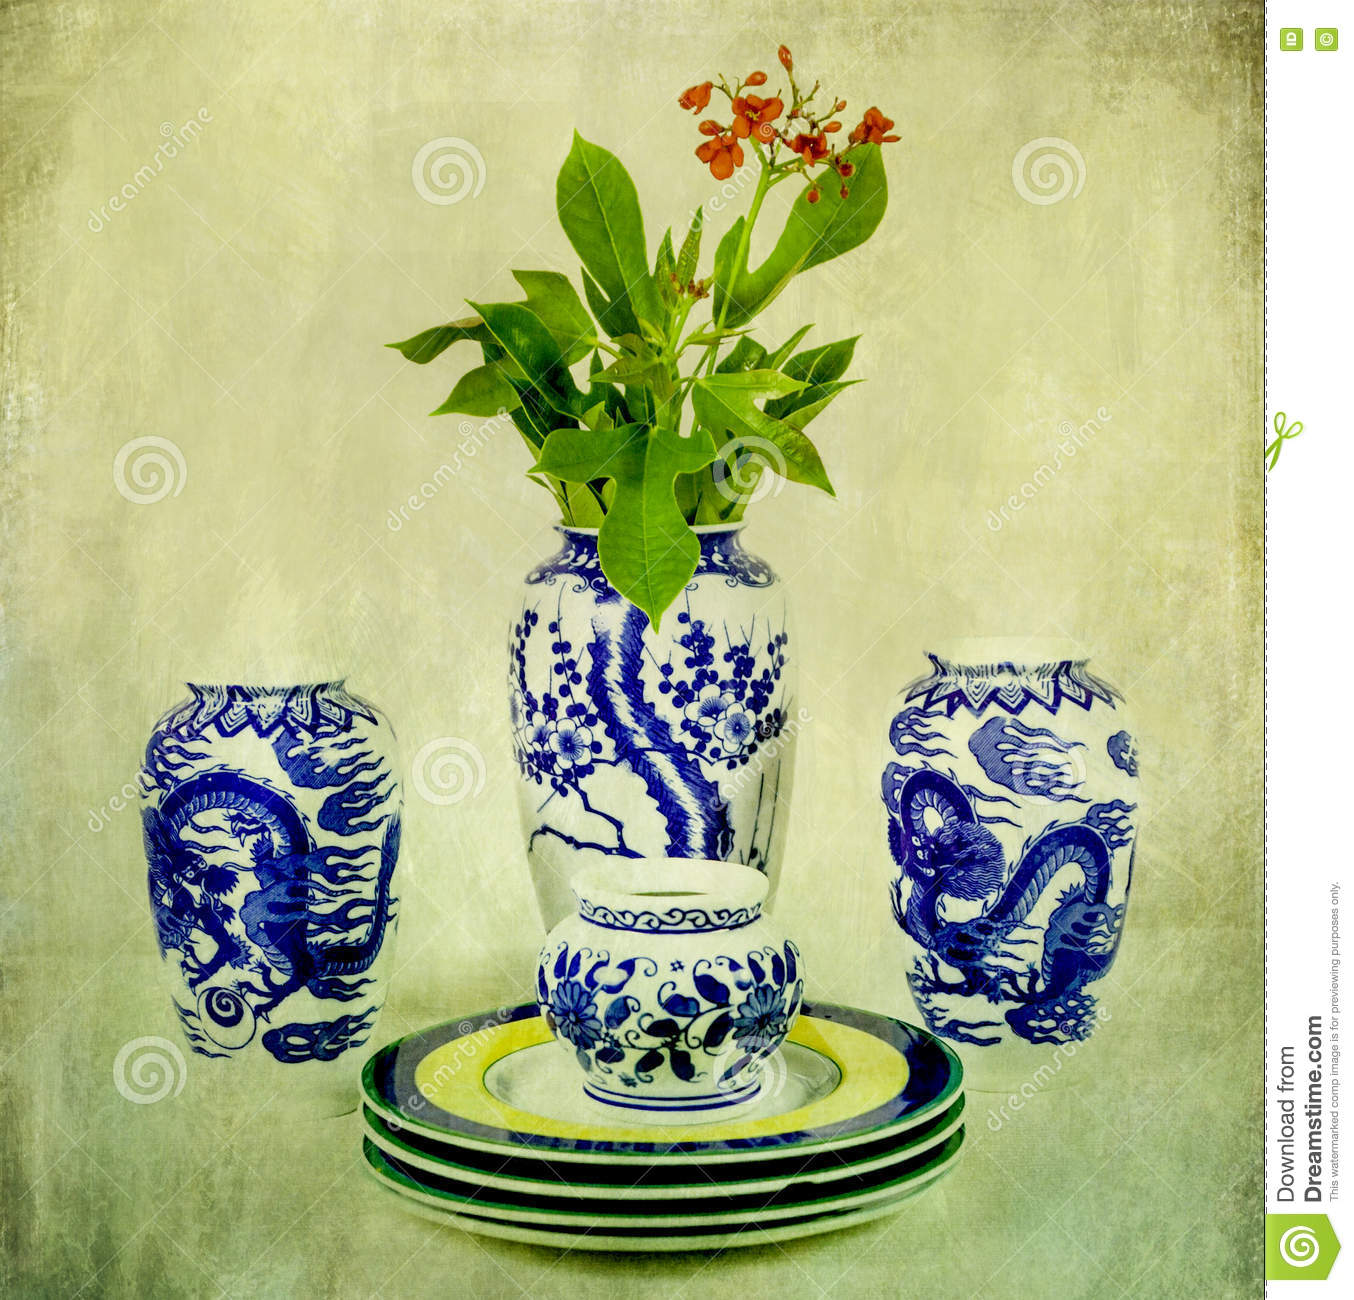 Vintage chinese porcelain with flower stock photo image 75693384 vintage chinese porcelain with flower reviewsmspy